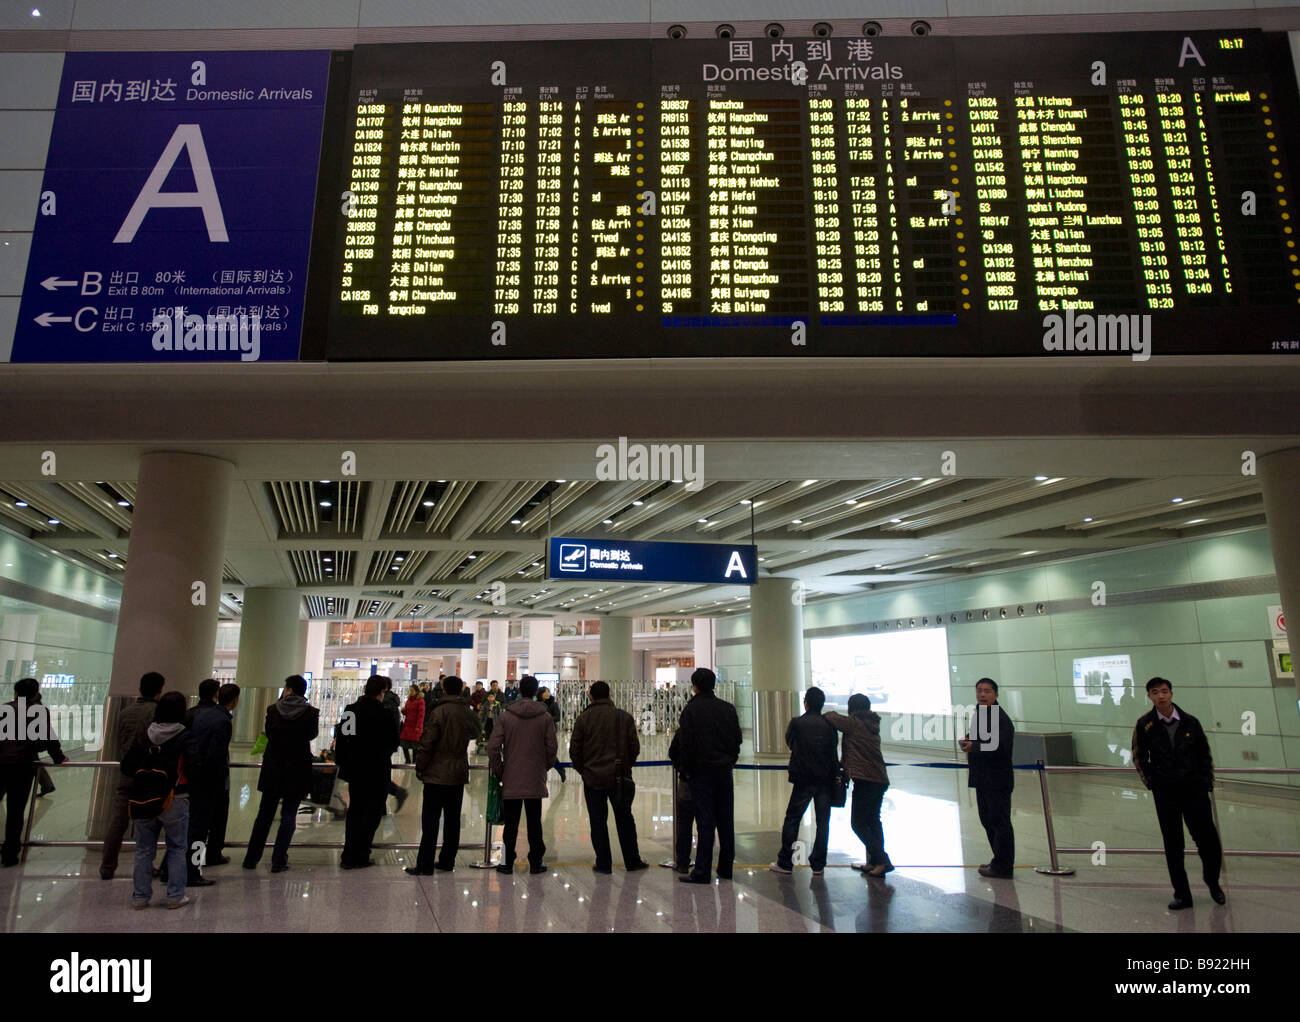 Arrivals area at new Terminal 2 at Beijing International Airport 2009 - Stock Image